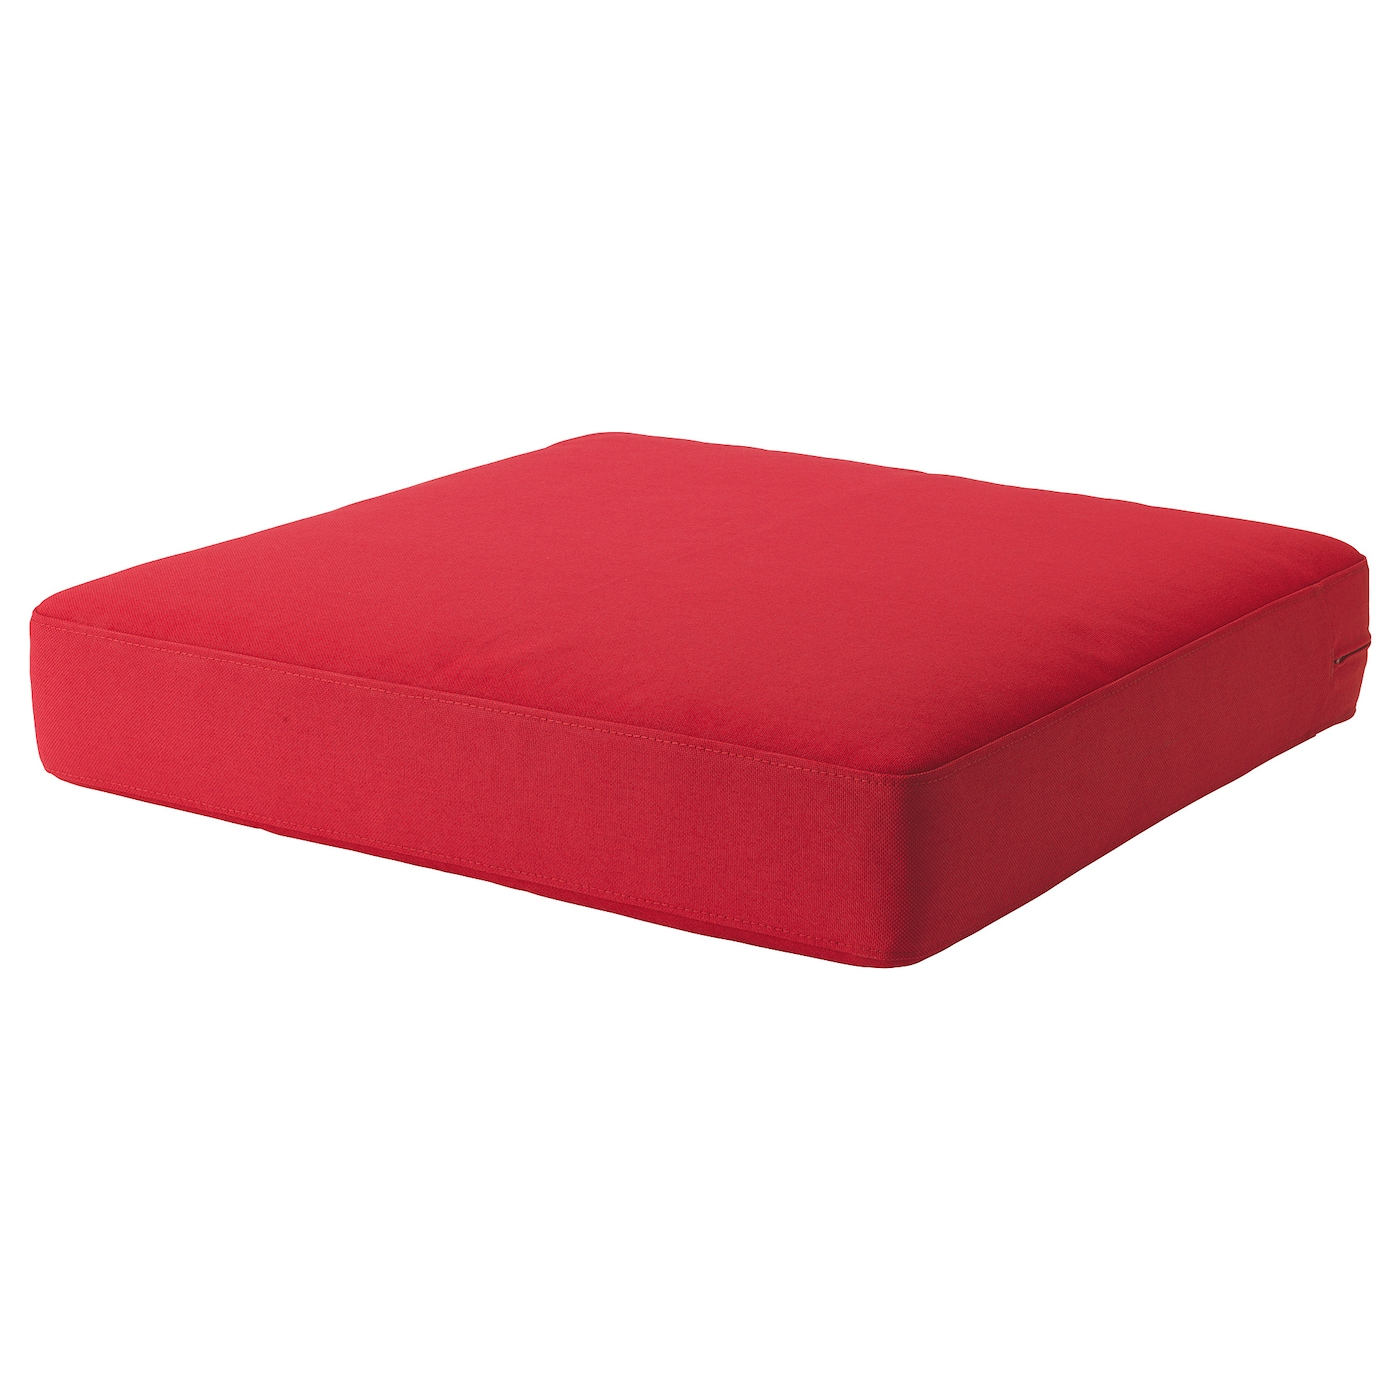 fr s n duvholmen coussin d 39 assise ext rieur rouge 62x62 cm ikea. Black Bedroom Furniture Sets. Home Design Ideas